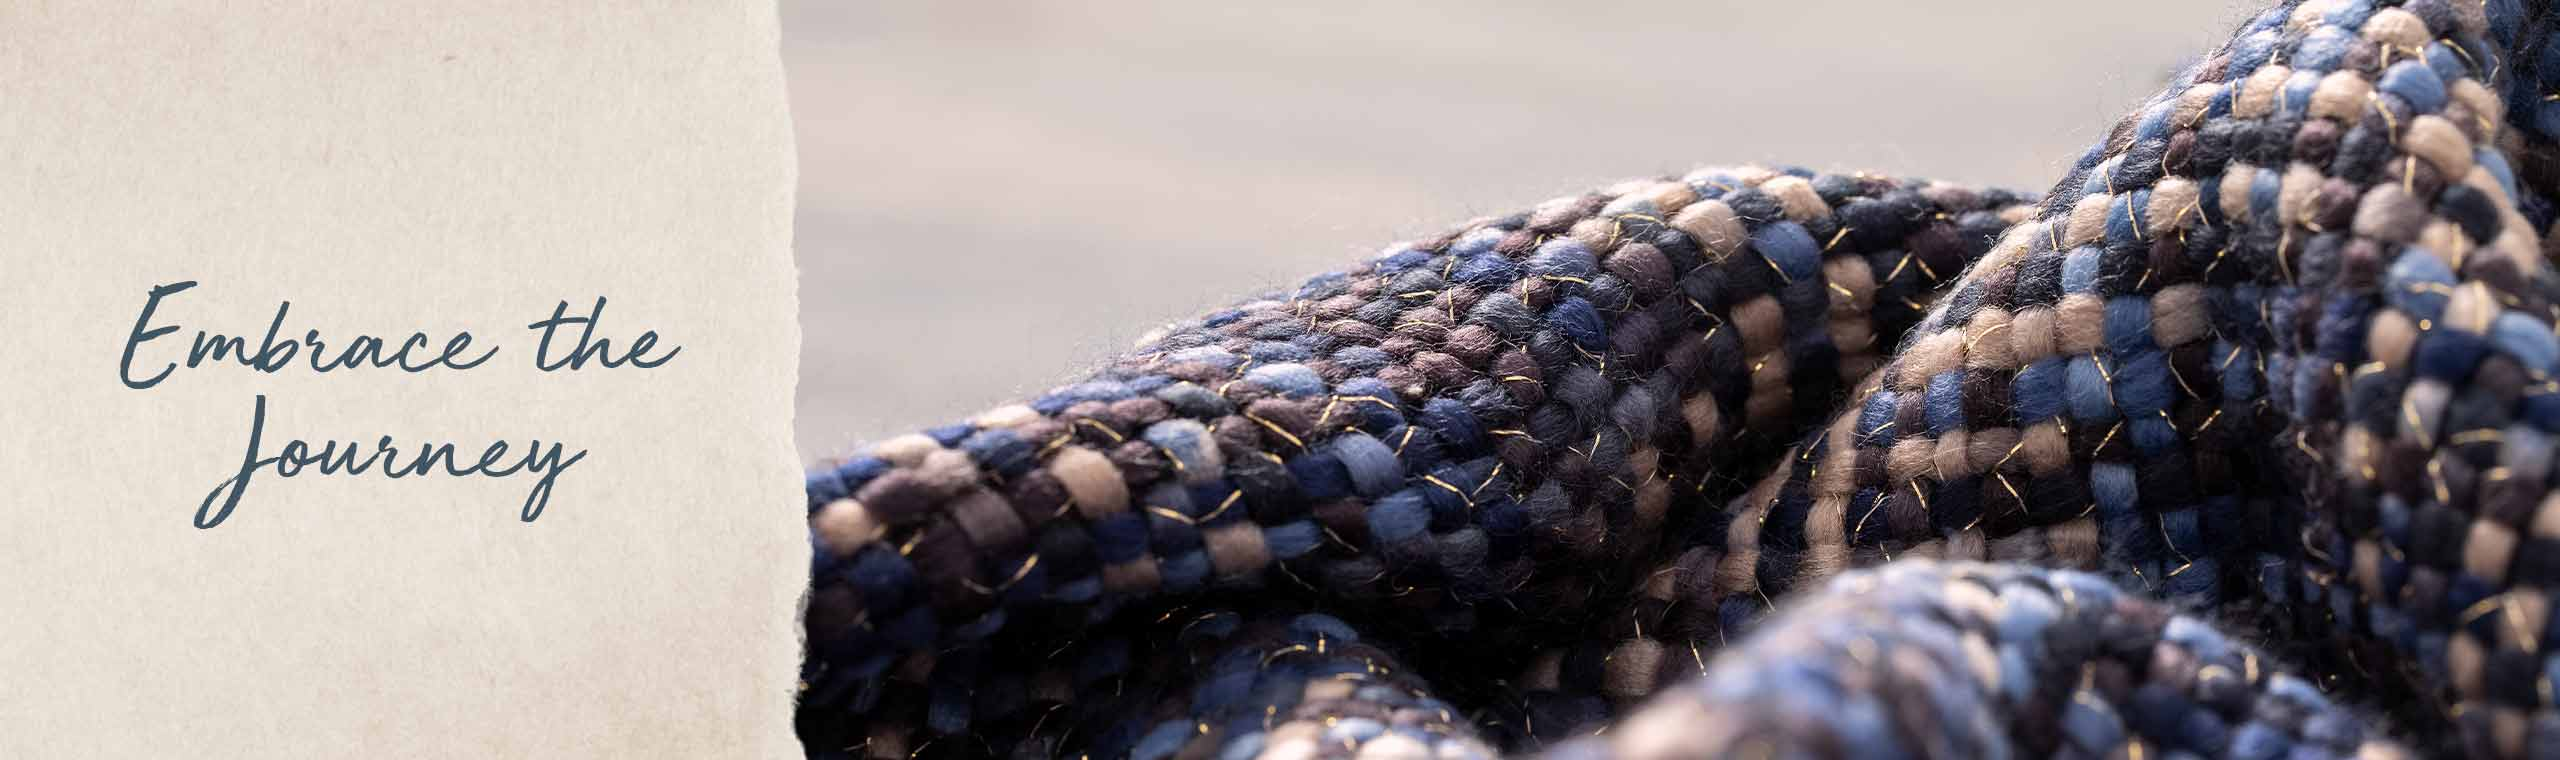 Embrace the journey. close up of the blue texture of a blue woven scarf with gold threads